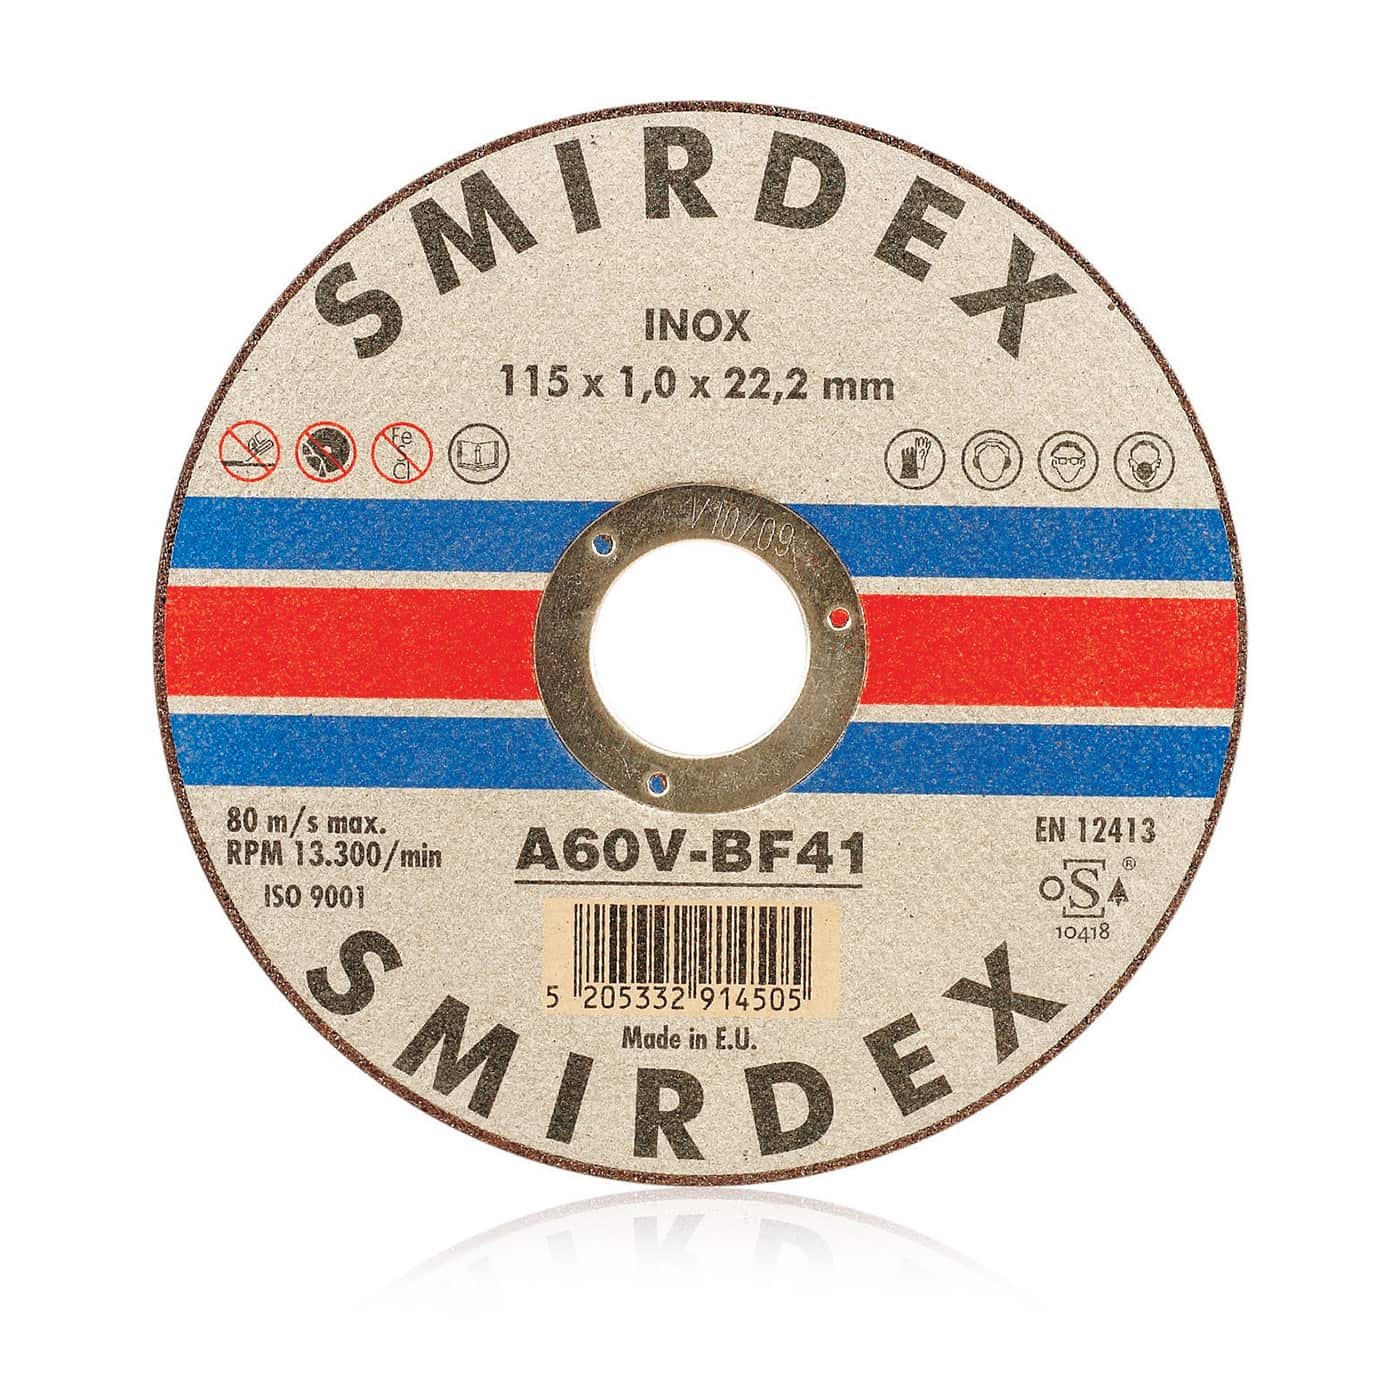 smirdex-914-cutting-wheels, cutting wheel, dedicated to stainless-steel alloys cutting, adding durability and precision to inox treatment